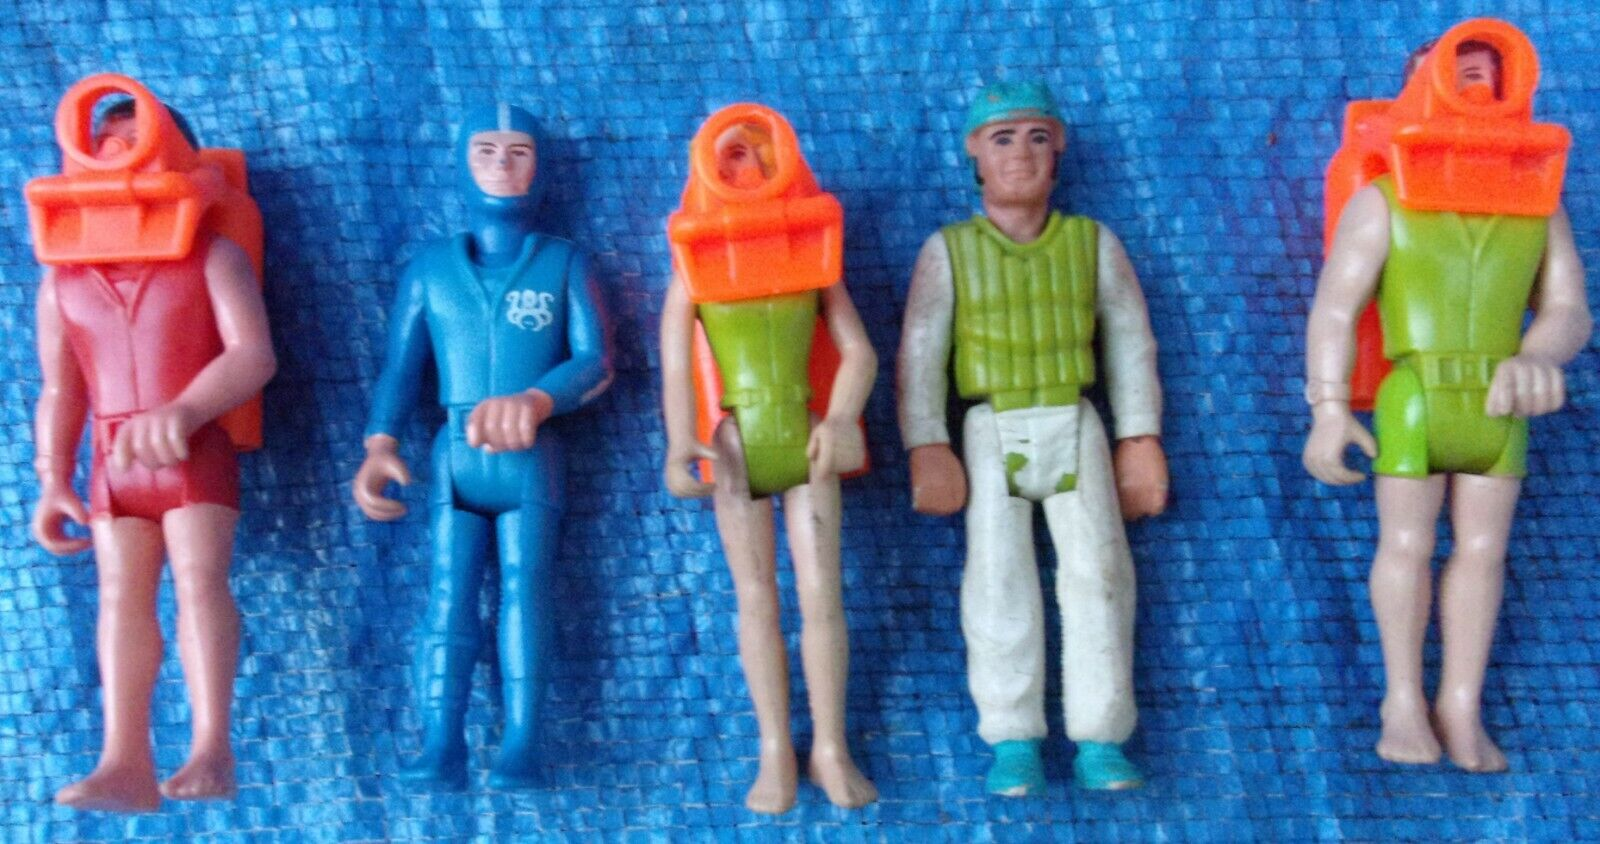 Fisher Price Adventure People Action Figure Lot Scuba Divers Kayaker Swimmer